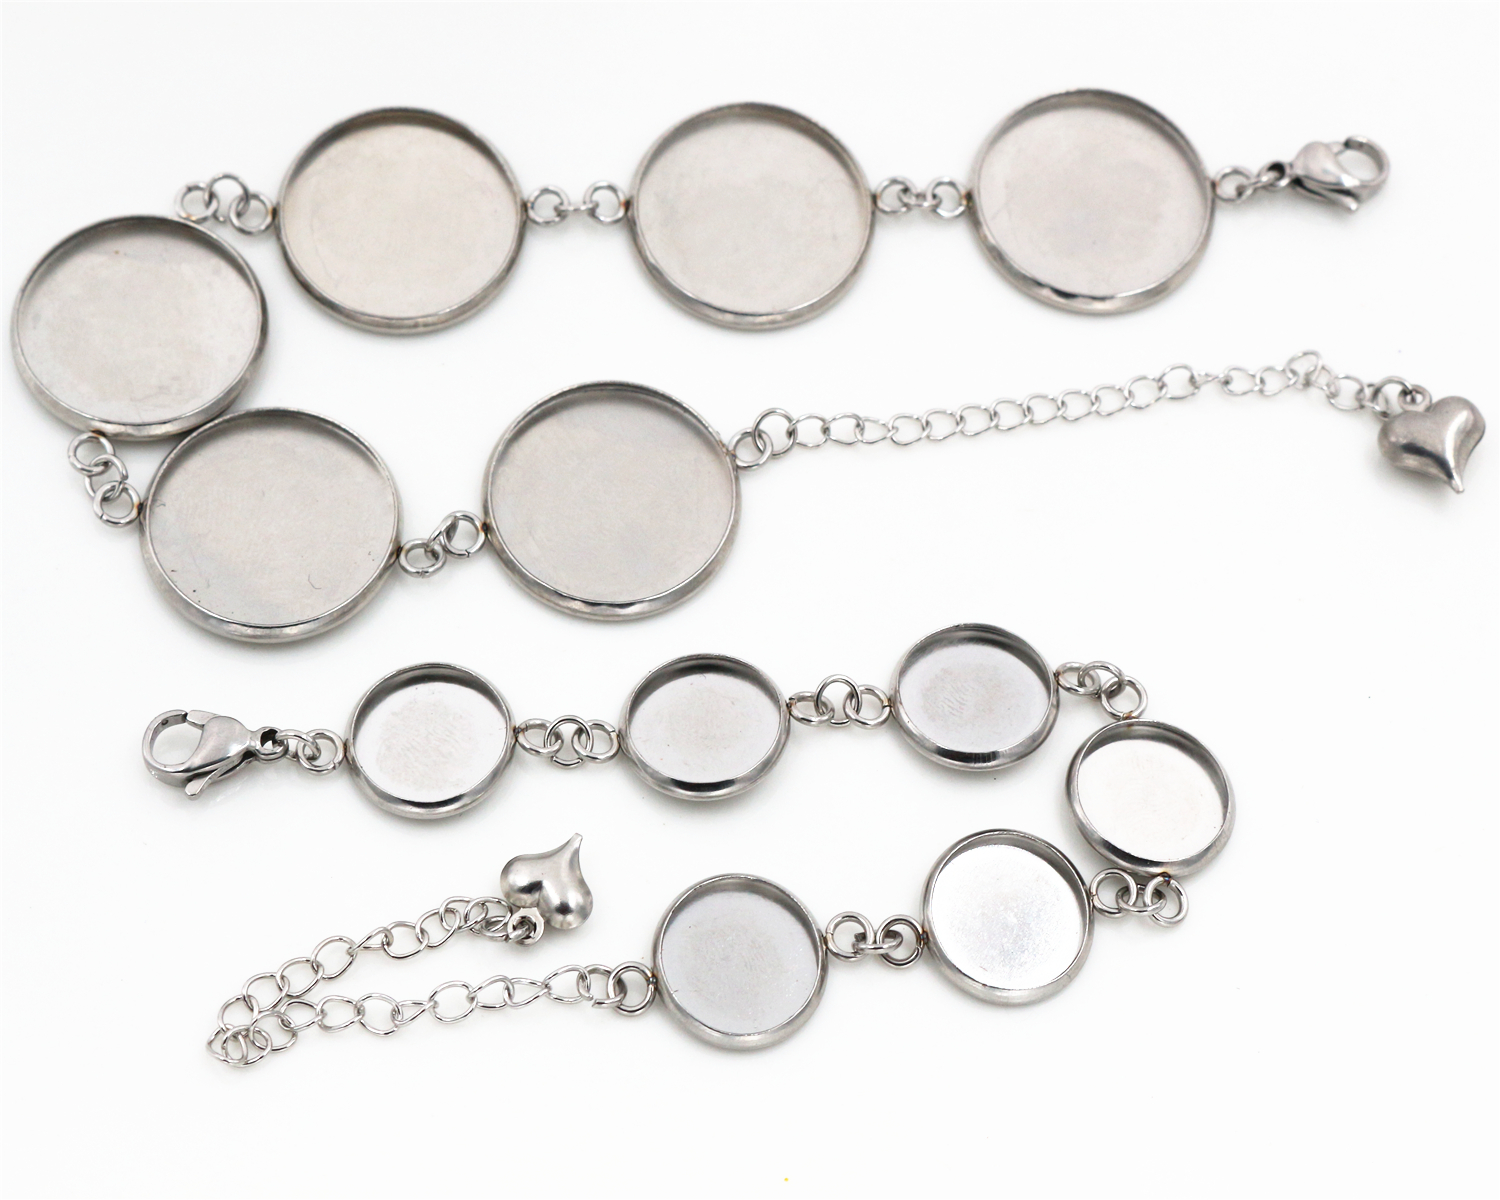 High Quality 12mm 14mm 16mm 18mm 20mm 316 stainless steel Bangle Base Bracelet Blank Findings Tray Bezel Setting Cabochon Cameo mibrow 10pcs lot stainless steel 8 10 12 14 16 18 20mm blank french lever earring tray cabochon setting cameo base jewelry